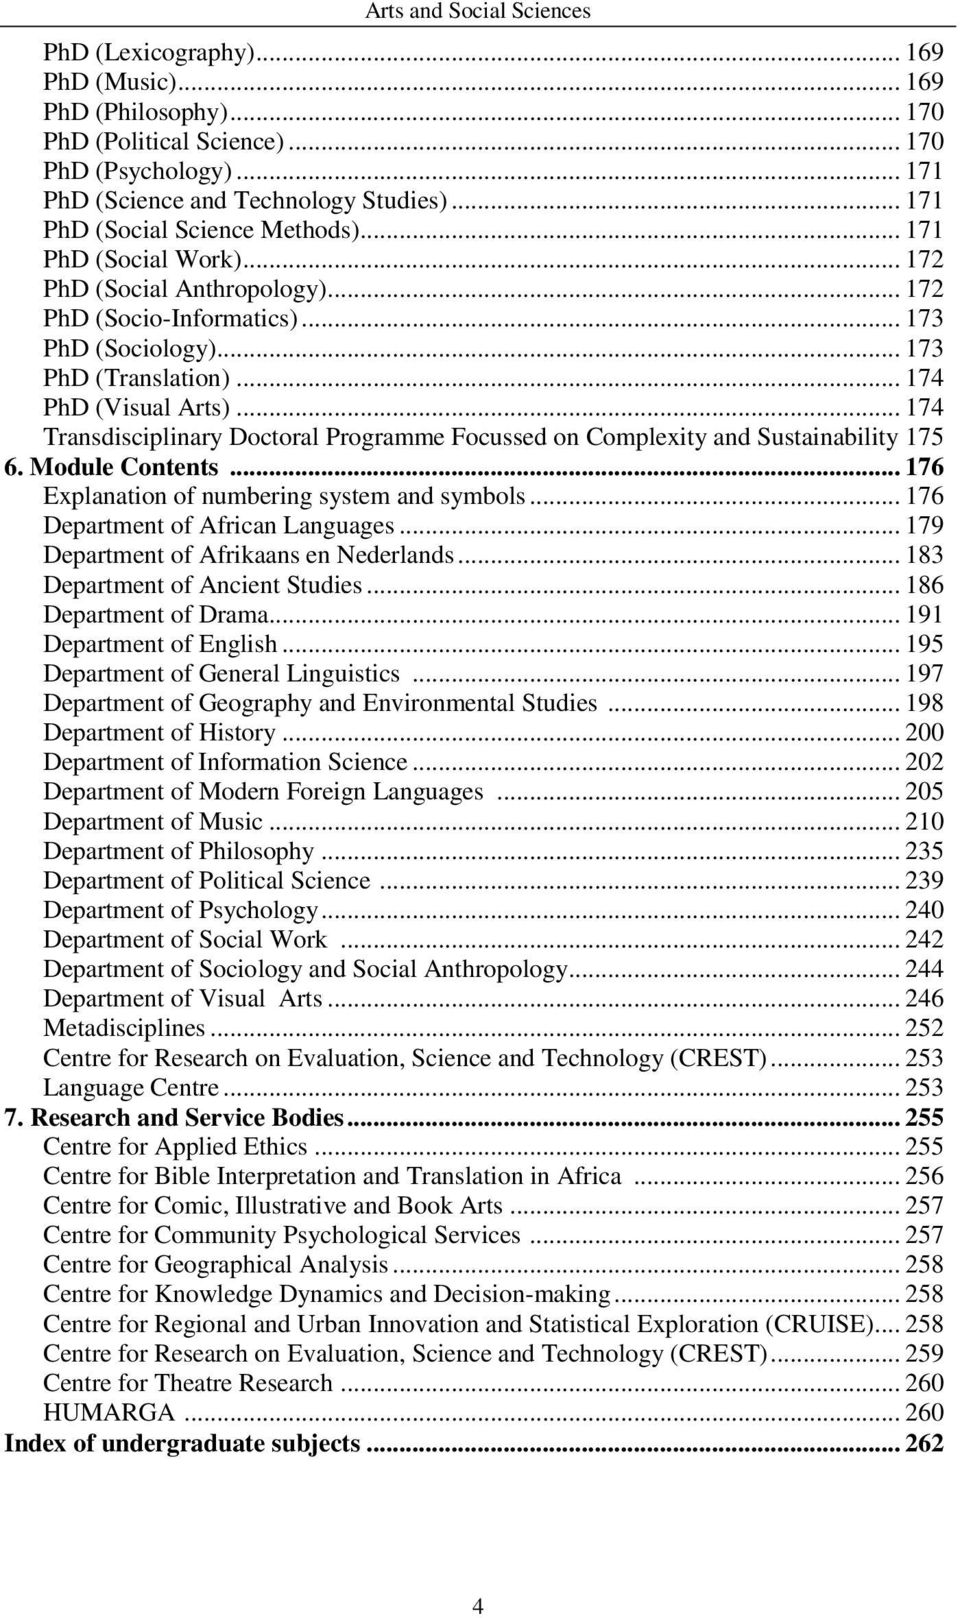 .. 174 Transdisciplinary Doctoral Programme Focussed on Complexity and Sustainability 175 6. Module Contents... 176 Explanation of numbering system and symbols... 176 Department of African Languages.